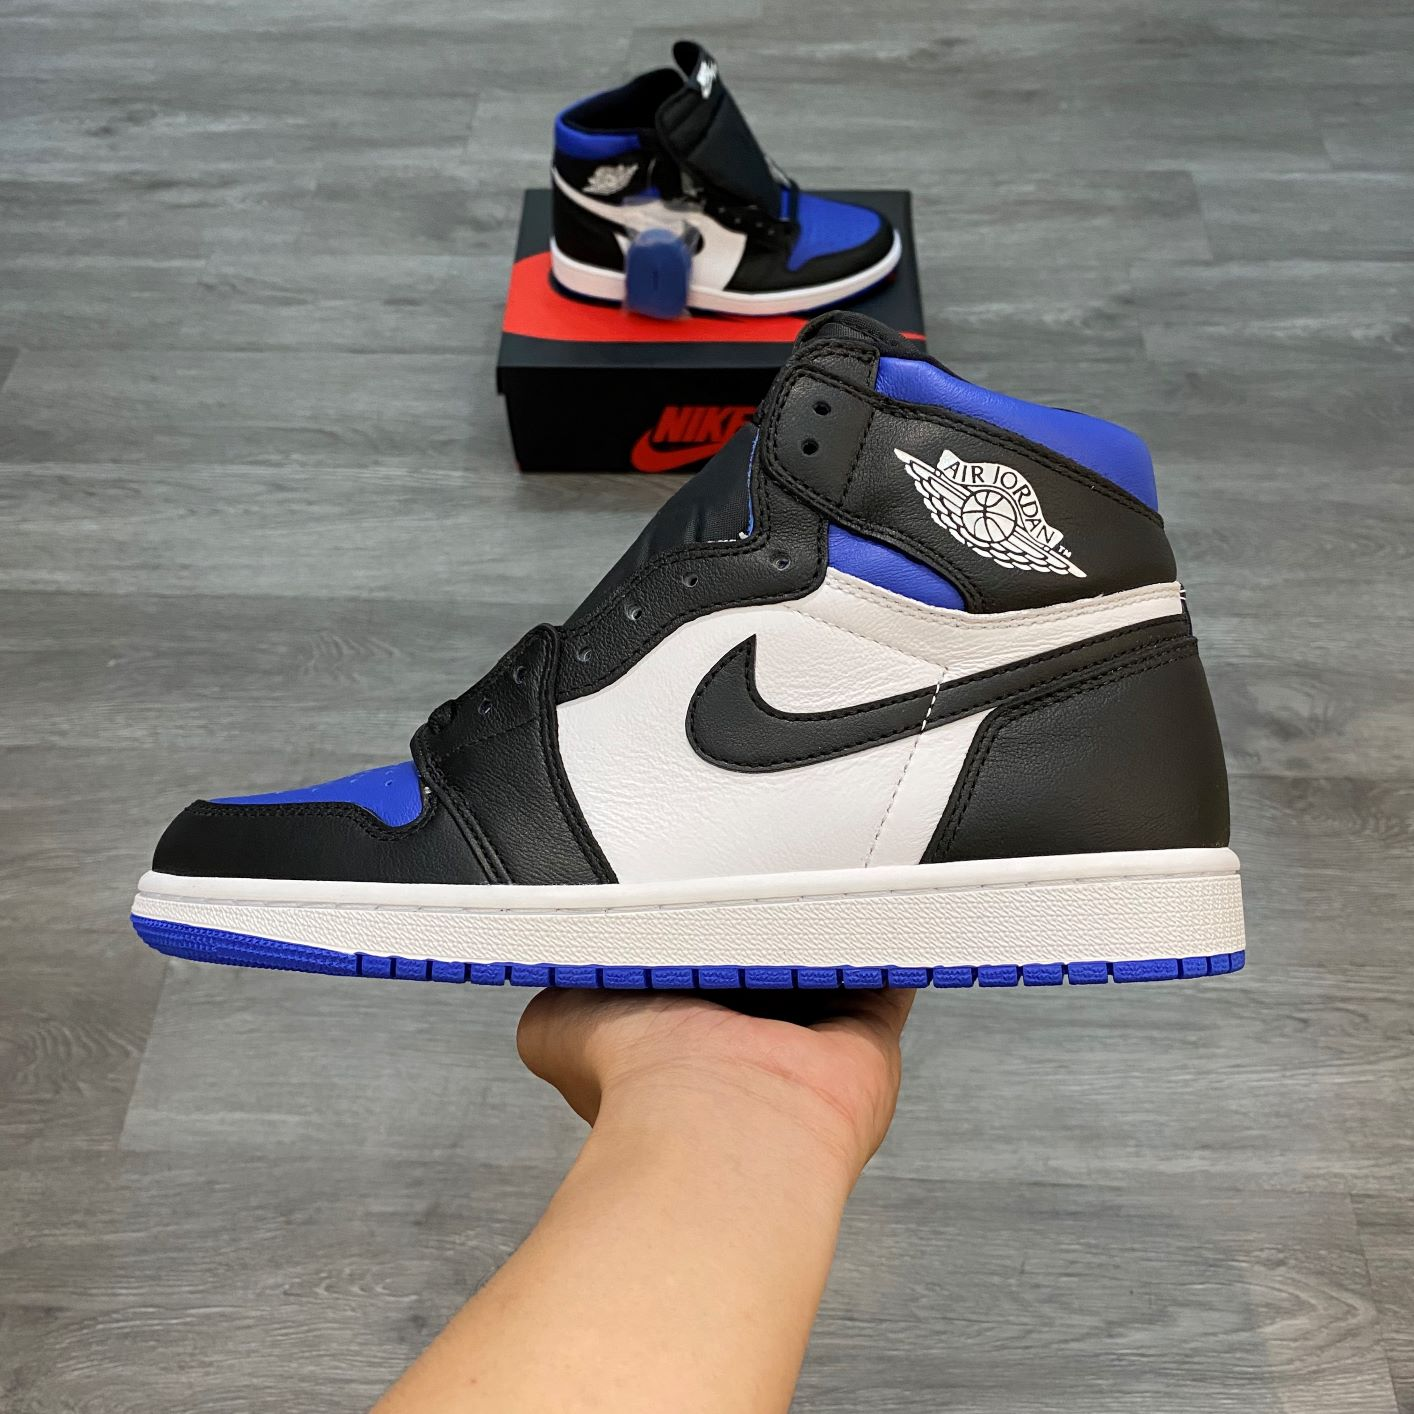 Nike Air Jordan1 High Royal Toe